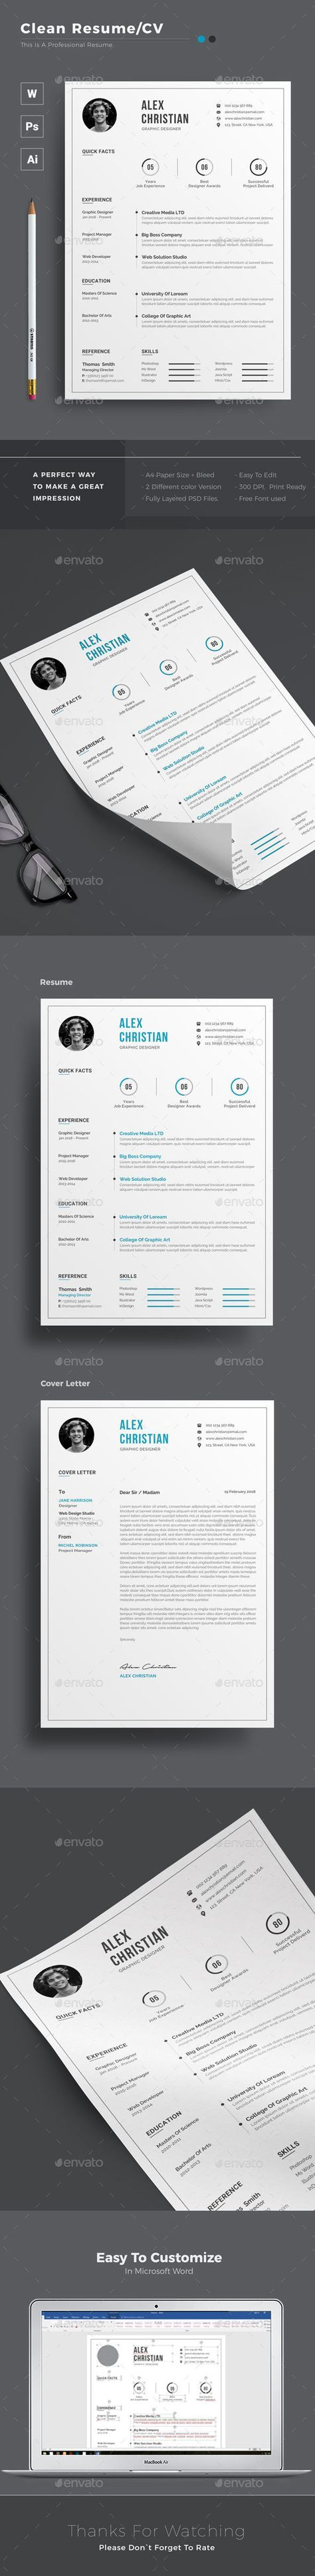 9 best Resumes images on Pinterest | Design resume, Resume and ...